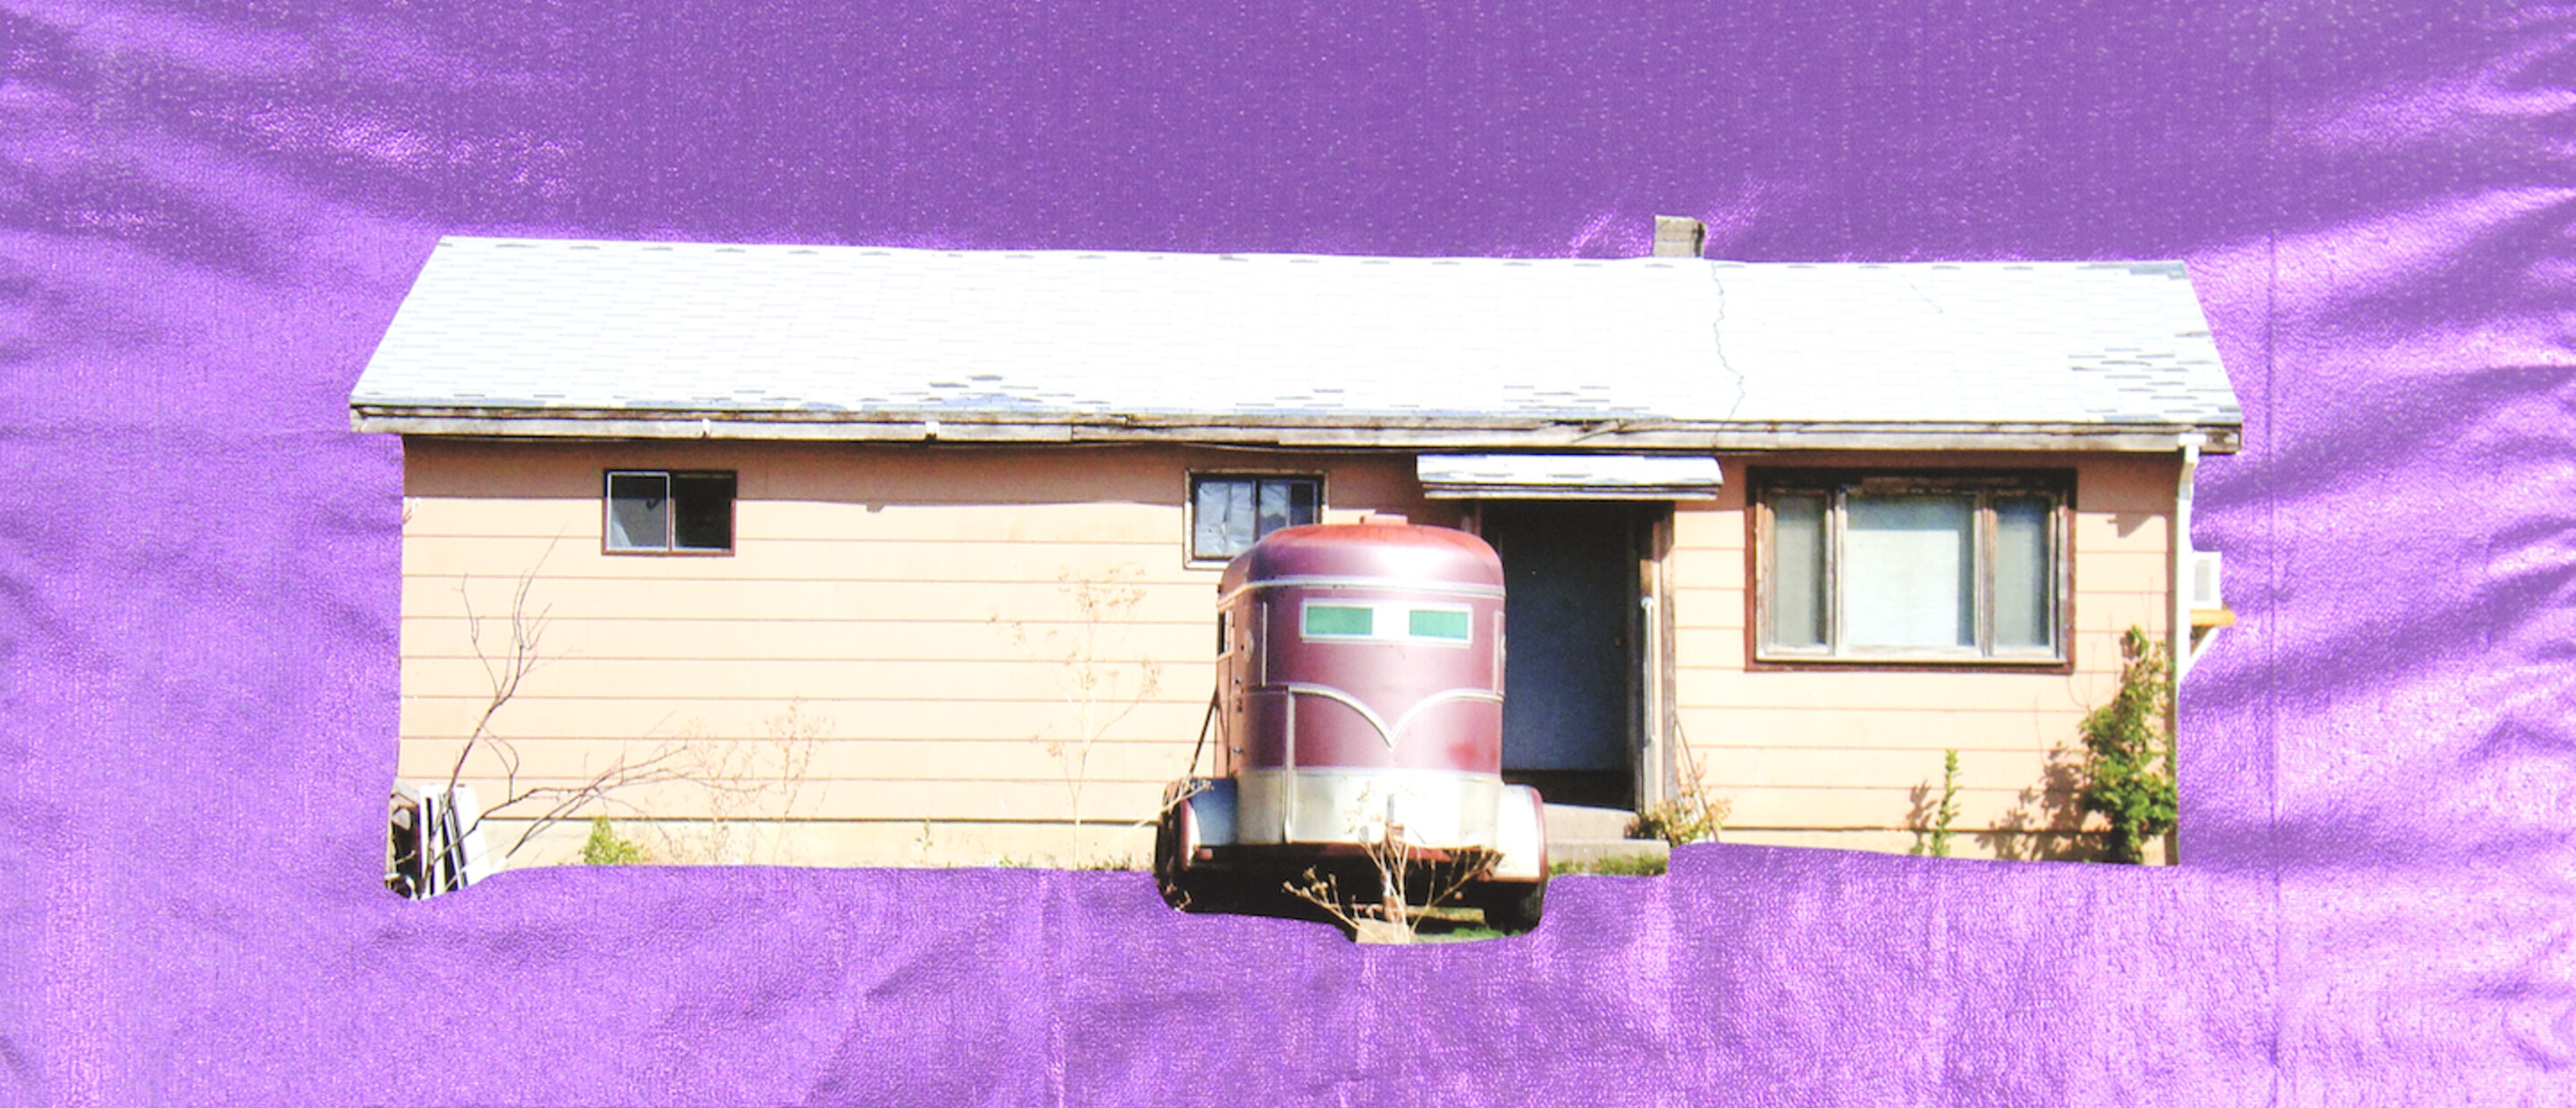 house and trailer photo collaged on top of silky purple background